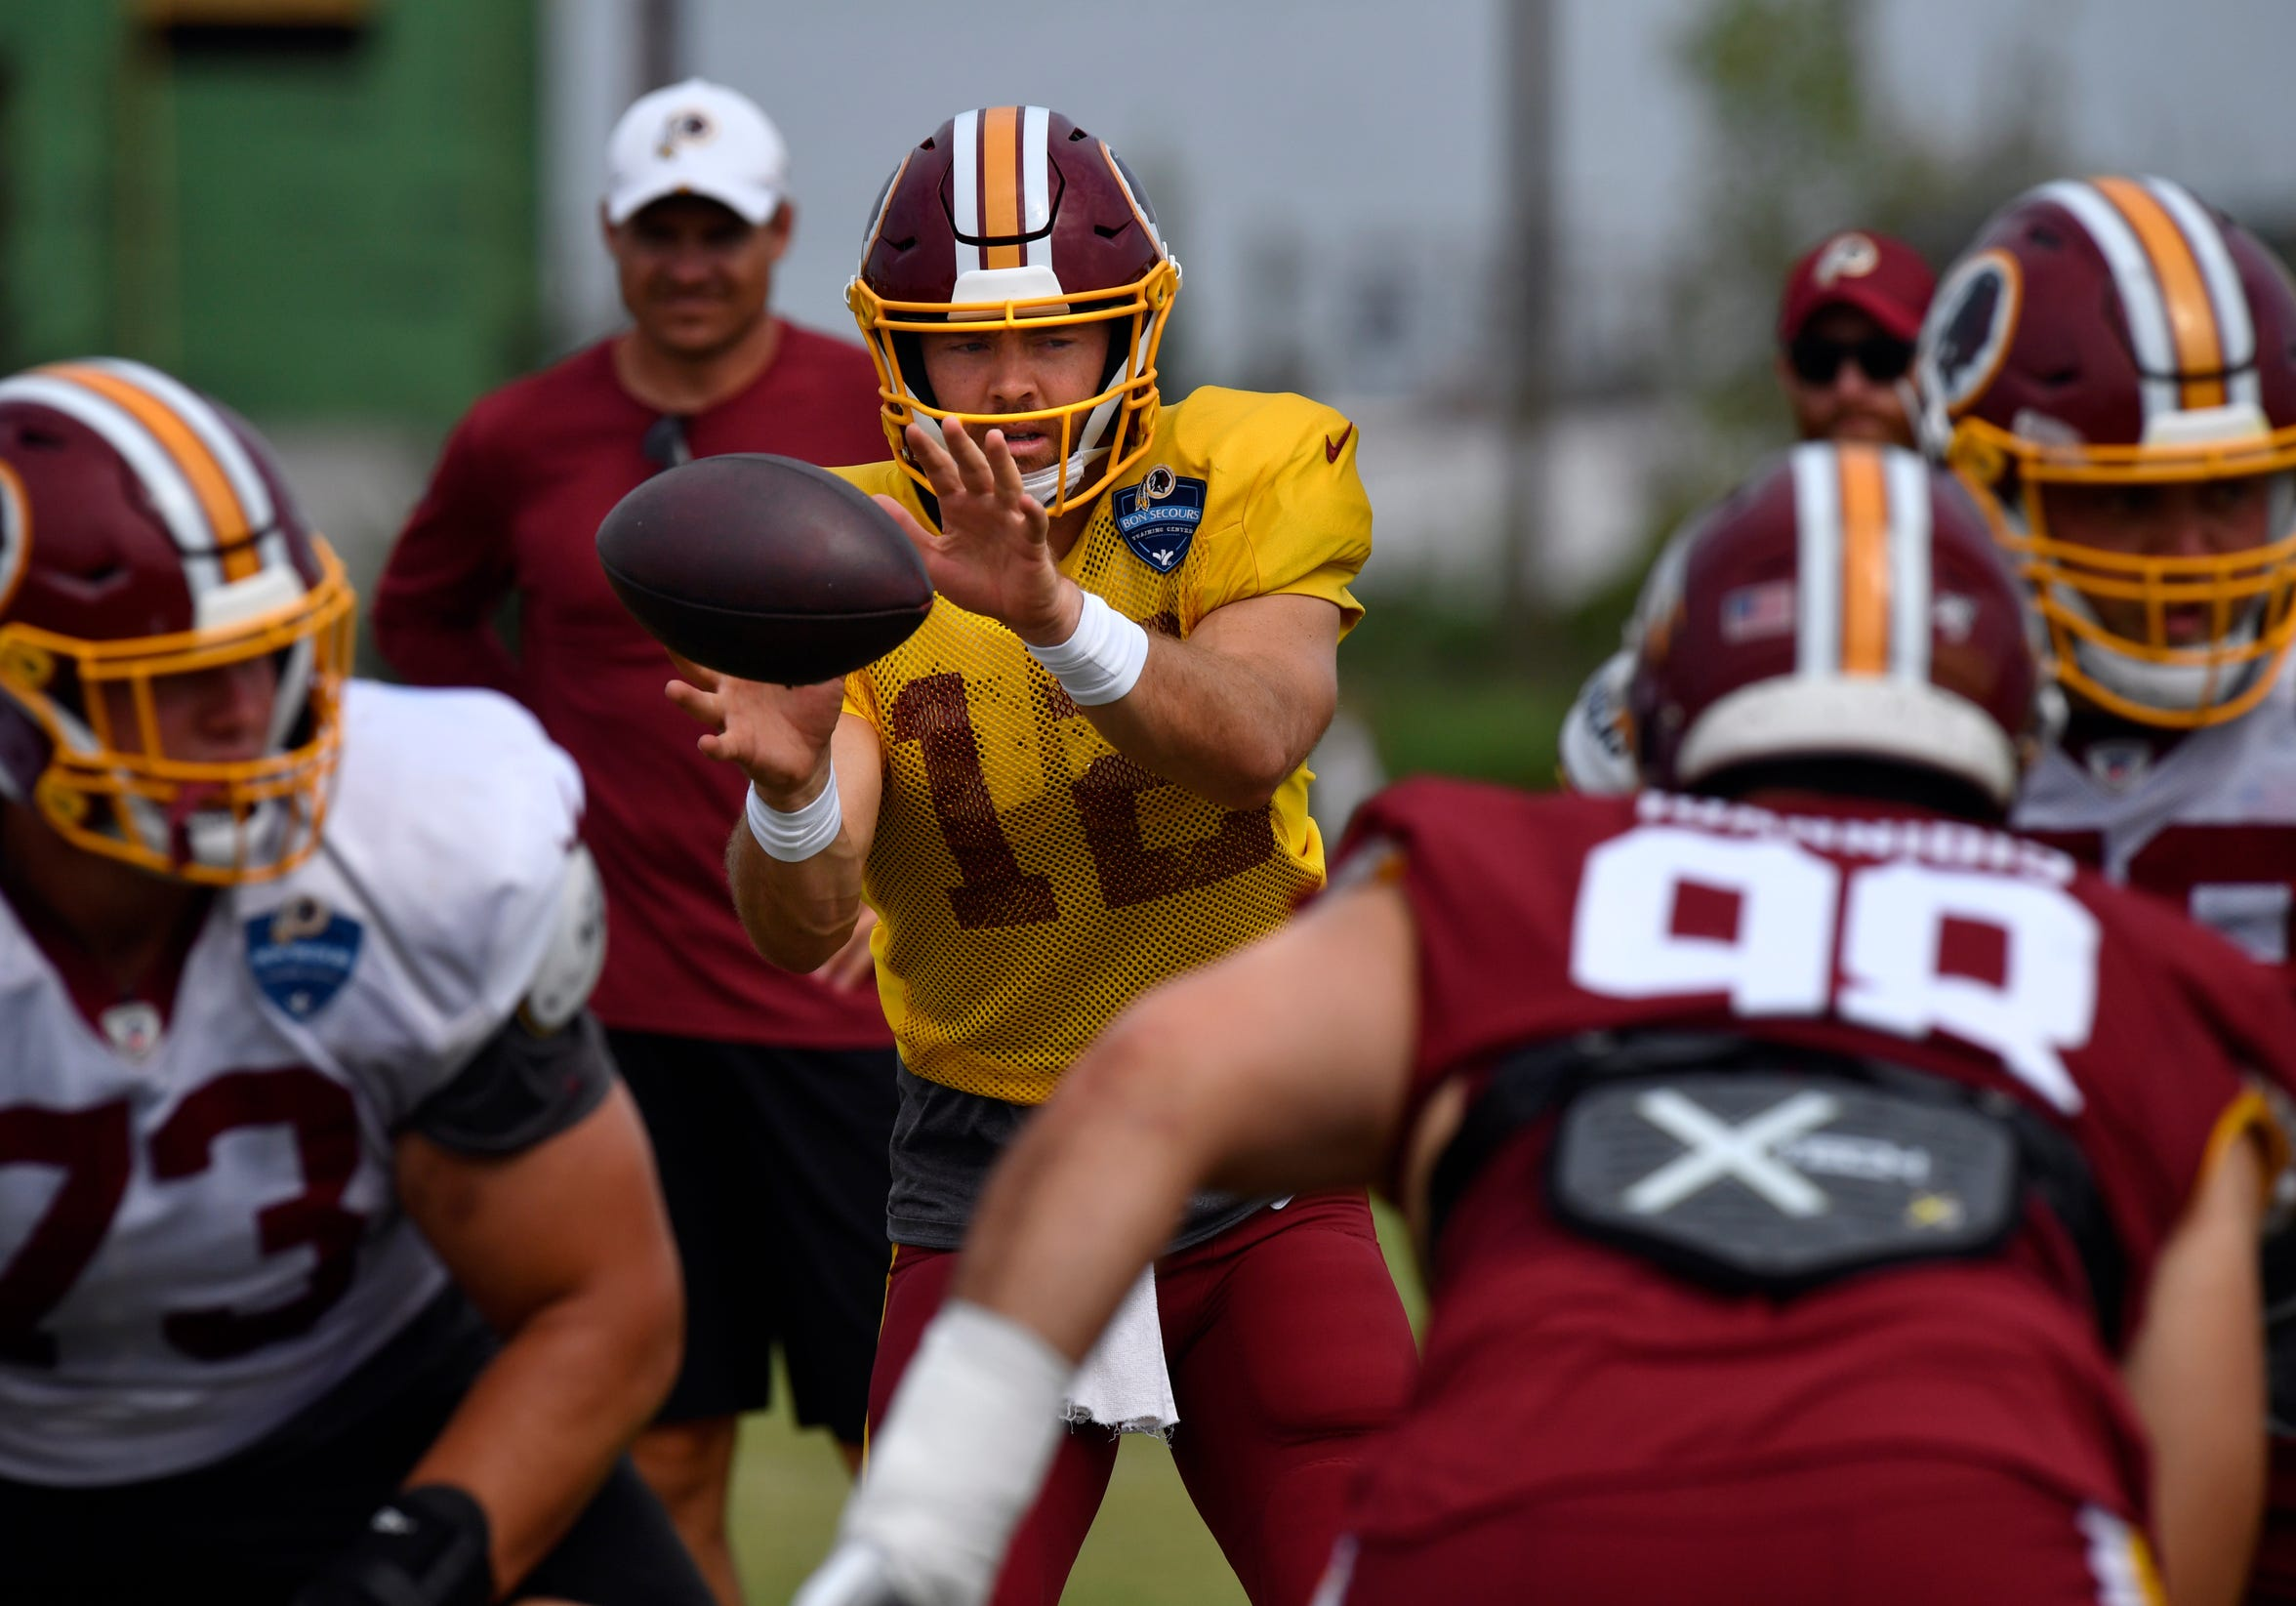 Colt McCoy catches the snapped ball during drills at Washington Redskins training camp in Richmond, Va. Monday August 5, 2019.